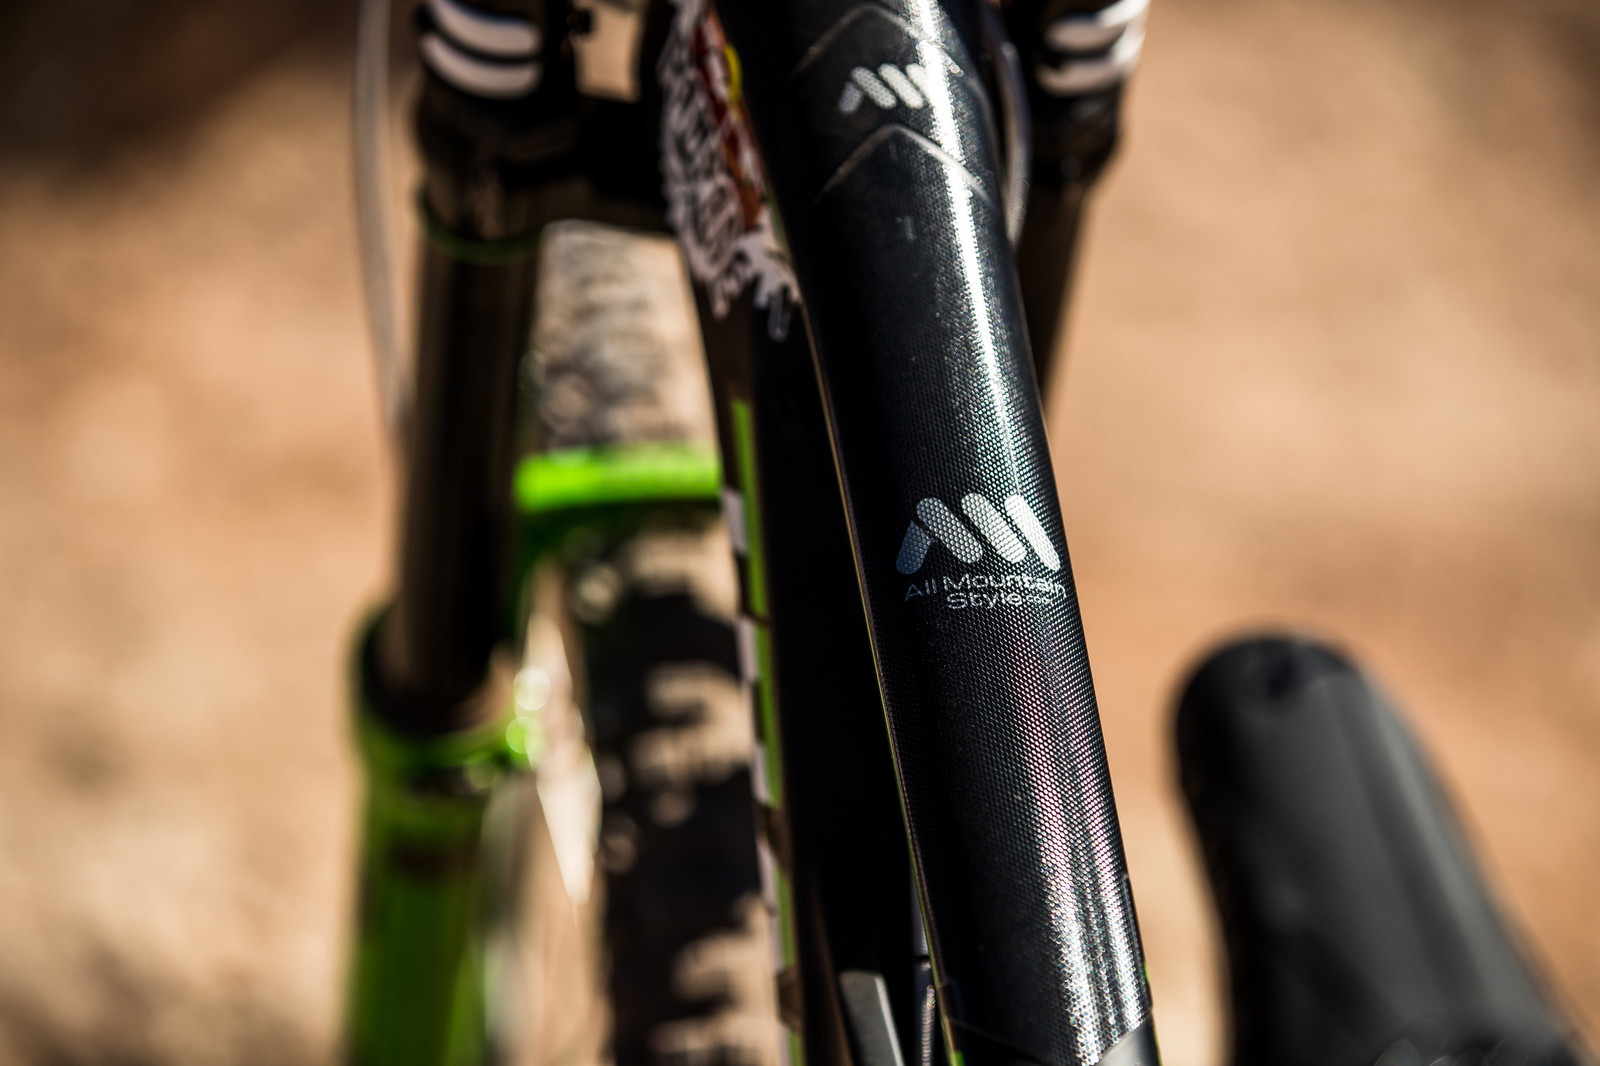 Stay Protected | All Mountain Style frame protection on Juan Diego Salido's Transition TR11 at Rampage 2019 - RAMPAGE BIKE - Juan Diego Salido's Transition TR11 - Mountain Biking Pictures - Vital MTB